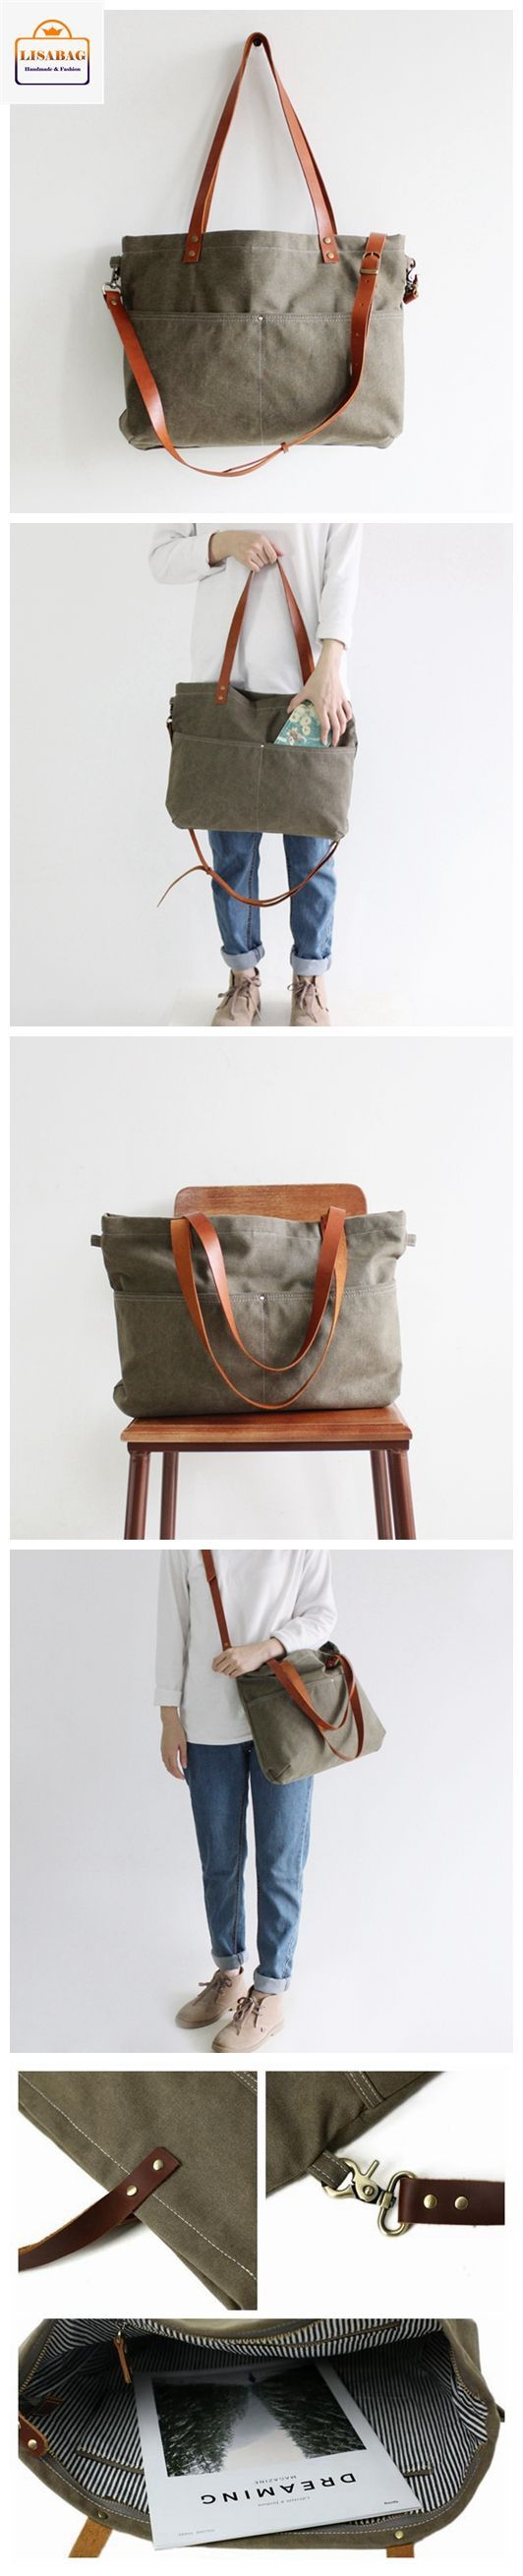 Handmade Canvas Tote Bag Messenger Bag Shopper Bag School Bag Handbag 14022 #diyhandbag